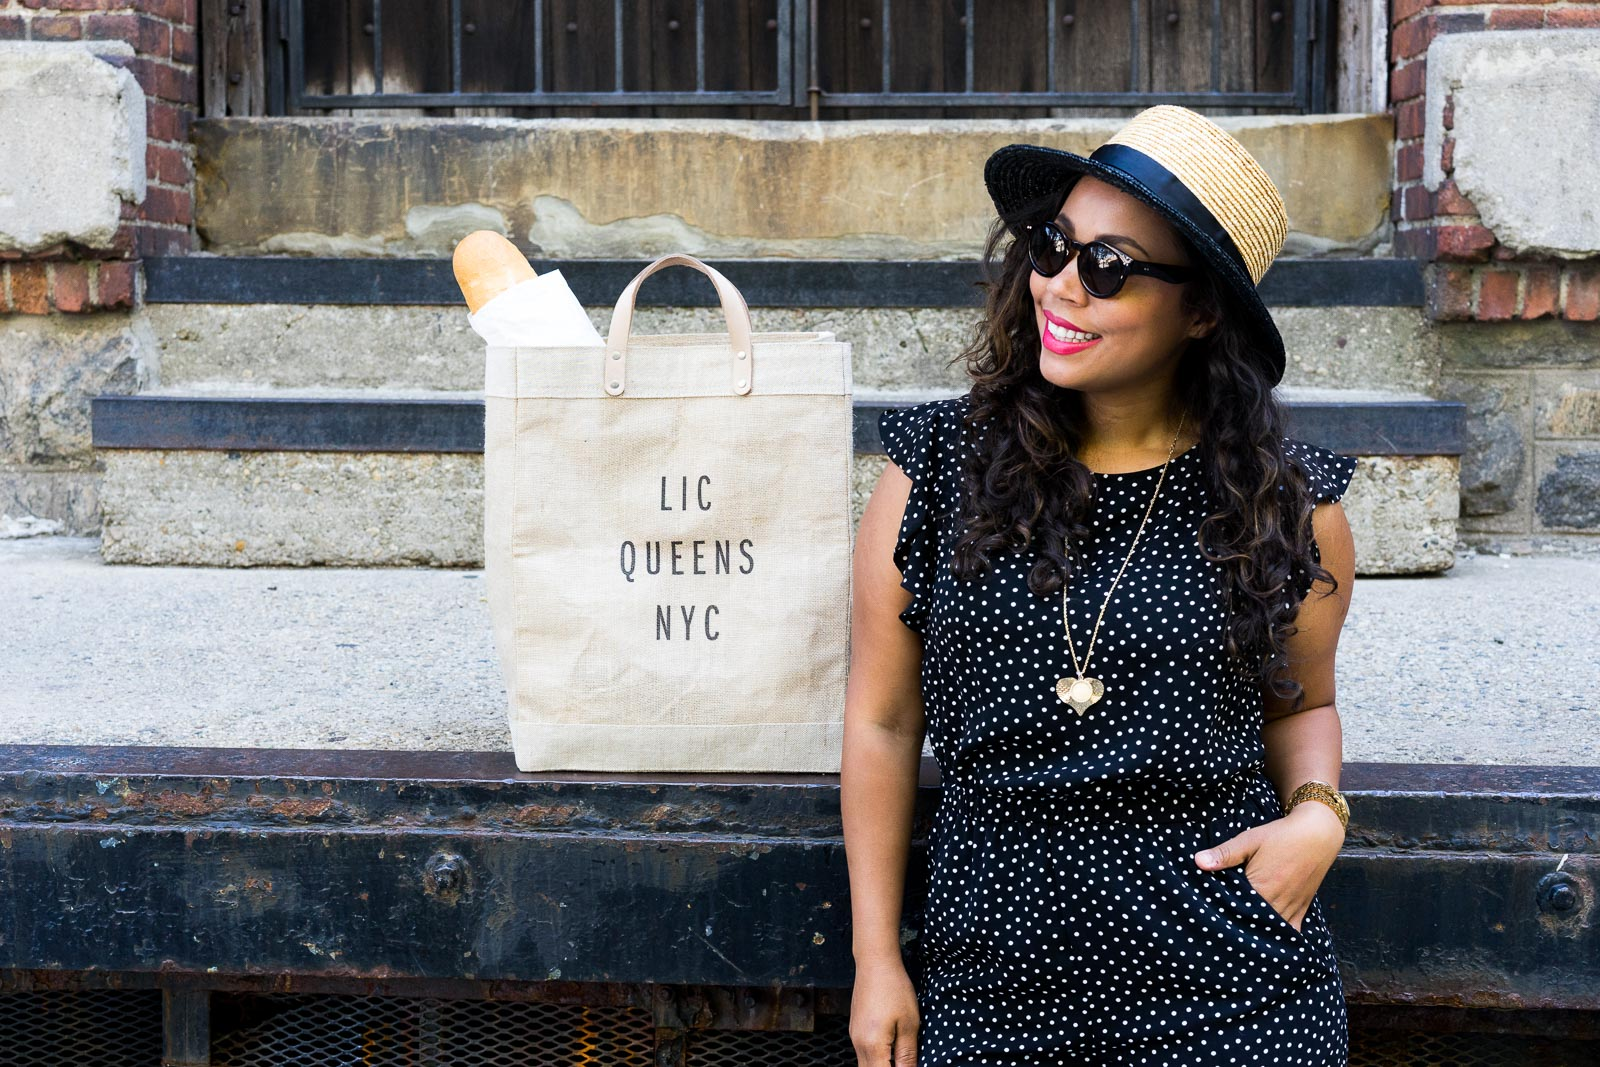 LIC-Market-bag-things-to-do-in-LIC-Queens-NYC_-2.jpg